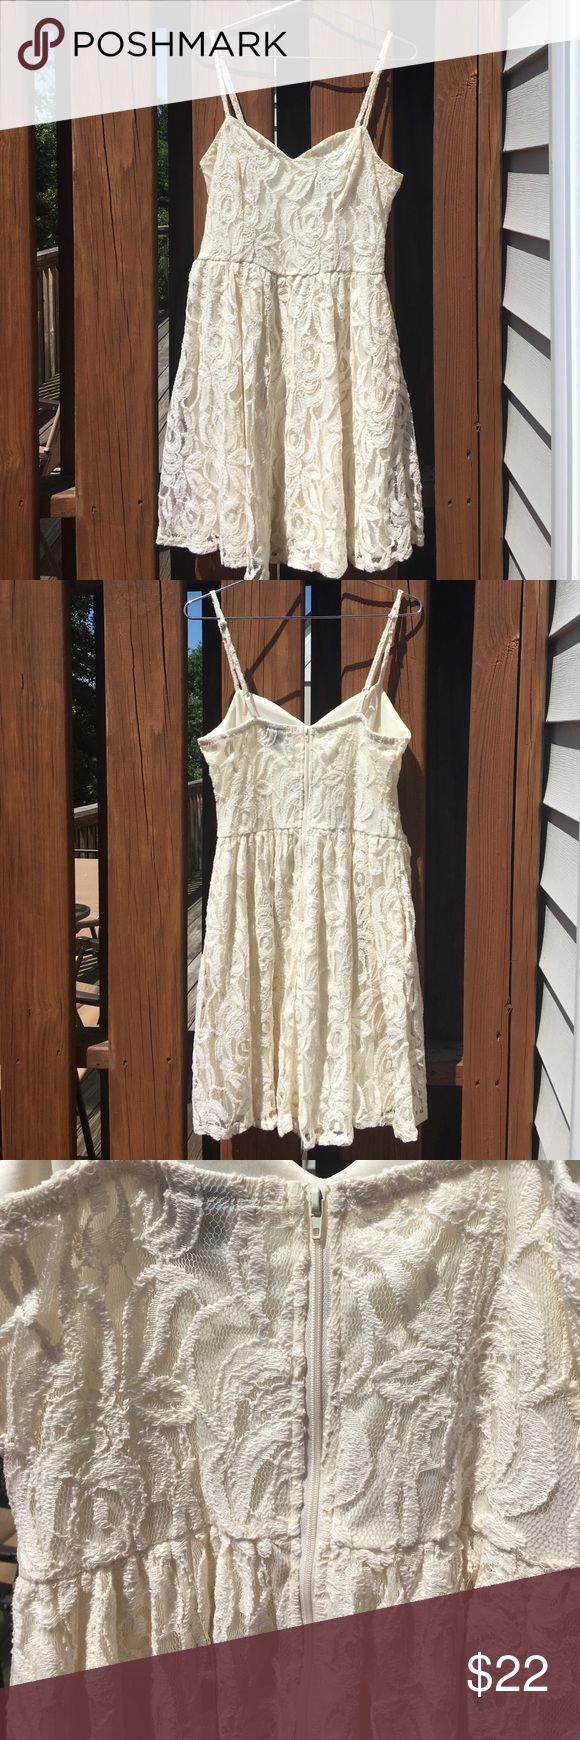 Fire Los Angeles cream Summer Sleeveless Dress M Adorable cream summer dress with liner. Has a zip up back and adjustable spaghetti straps. Flattering sweetheart neckline! Fire Los Angeles Dresses Mini